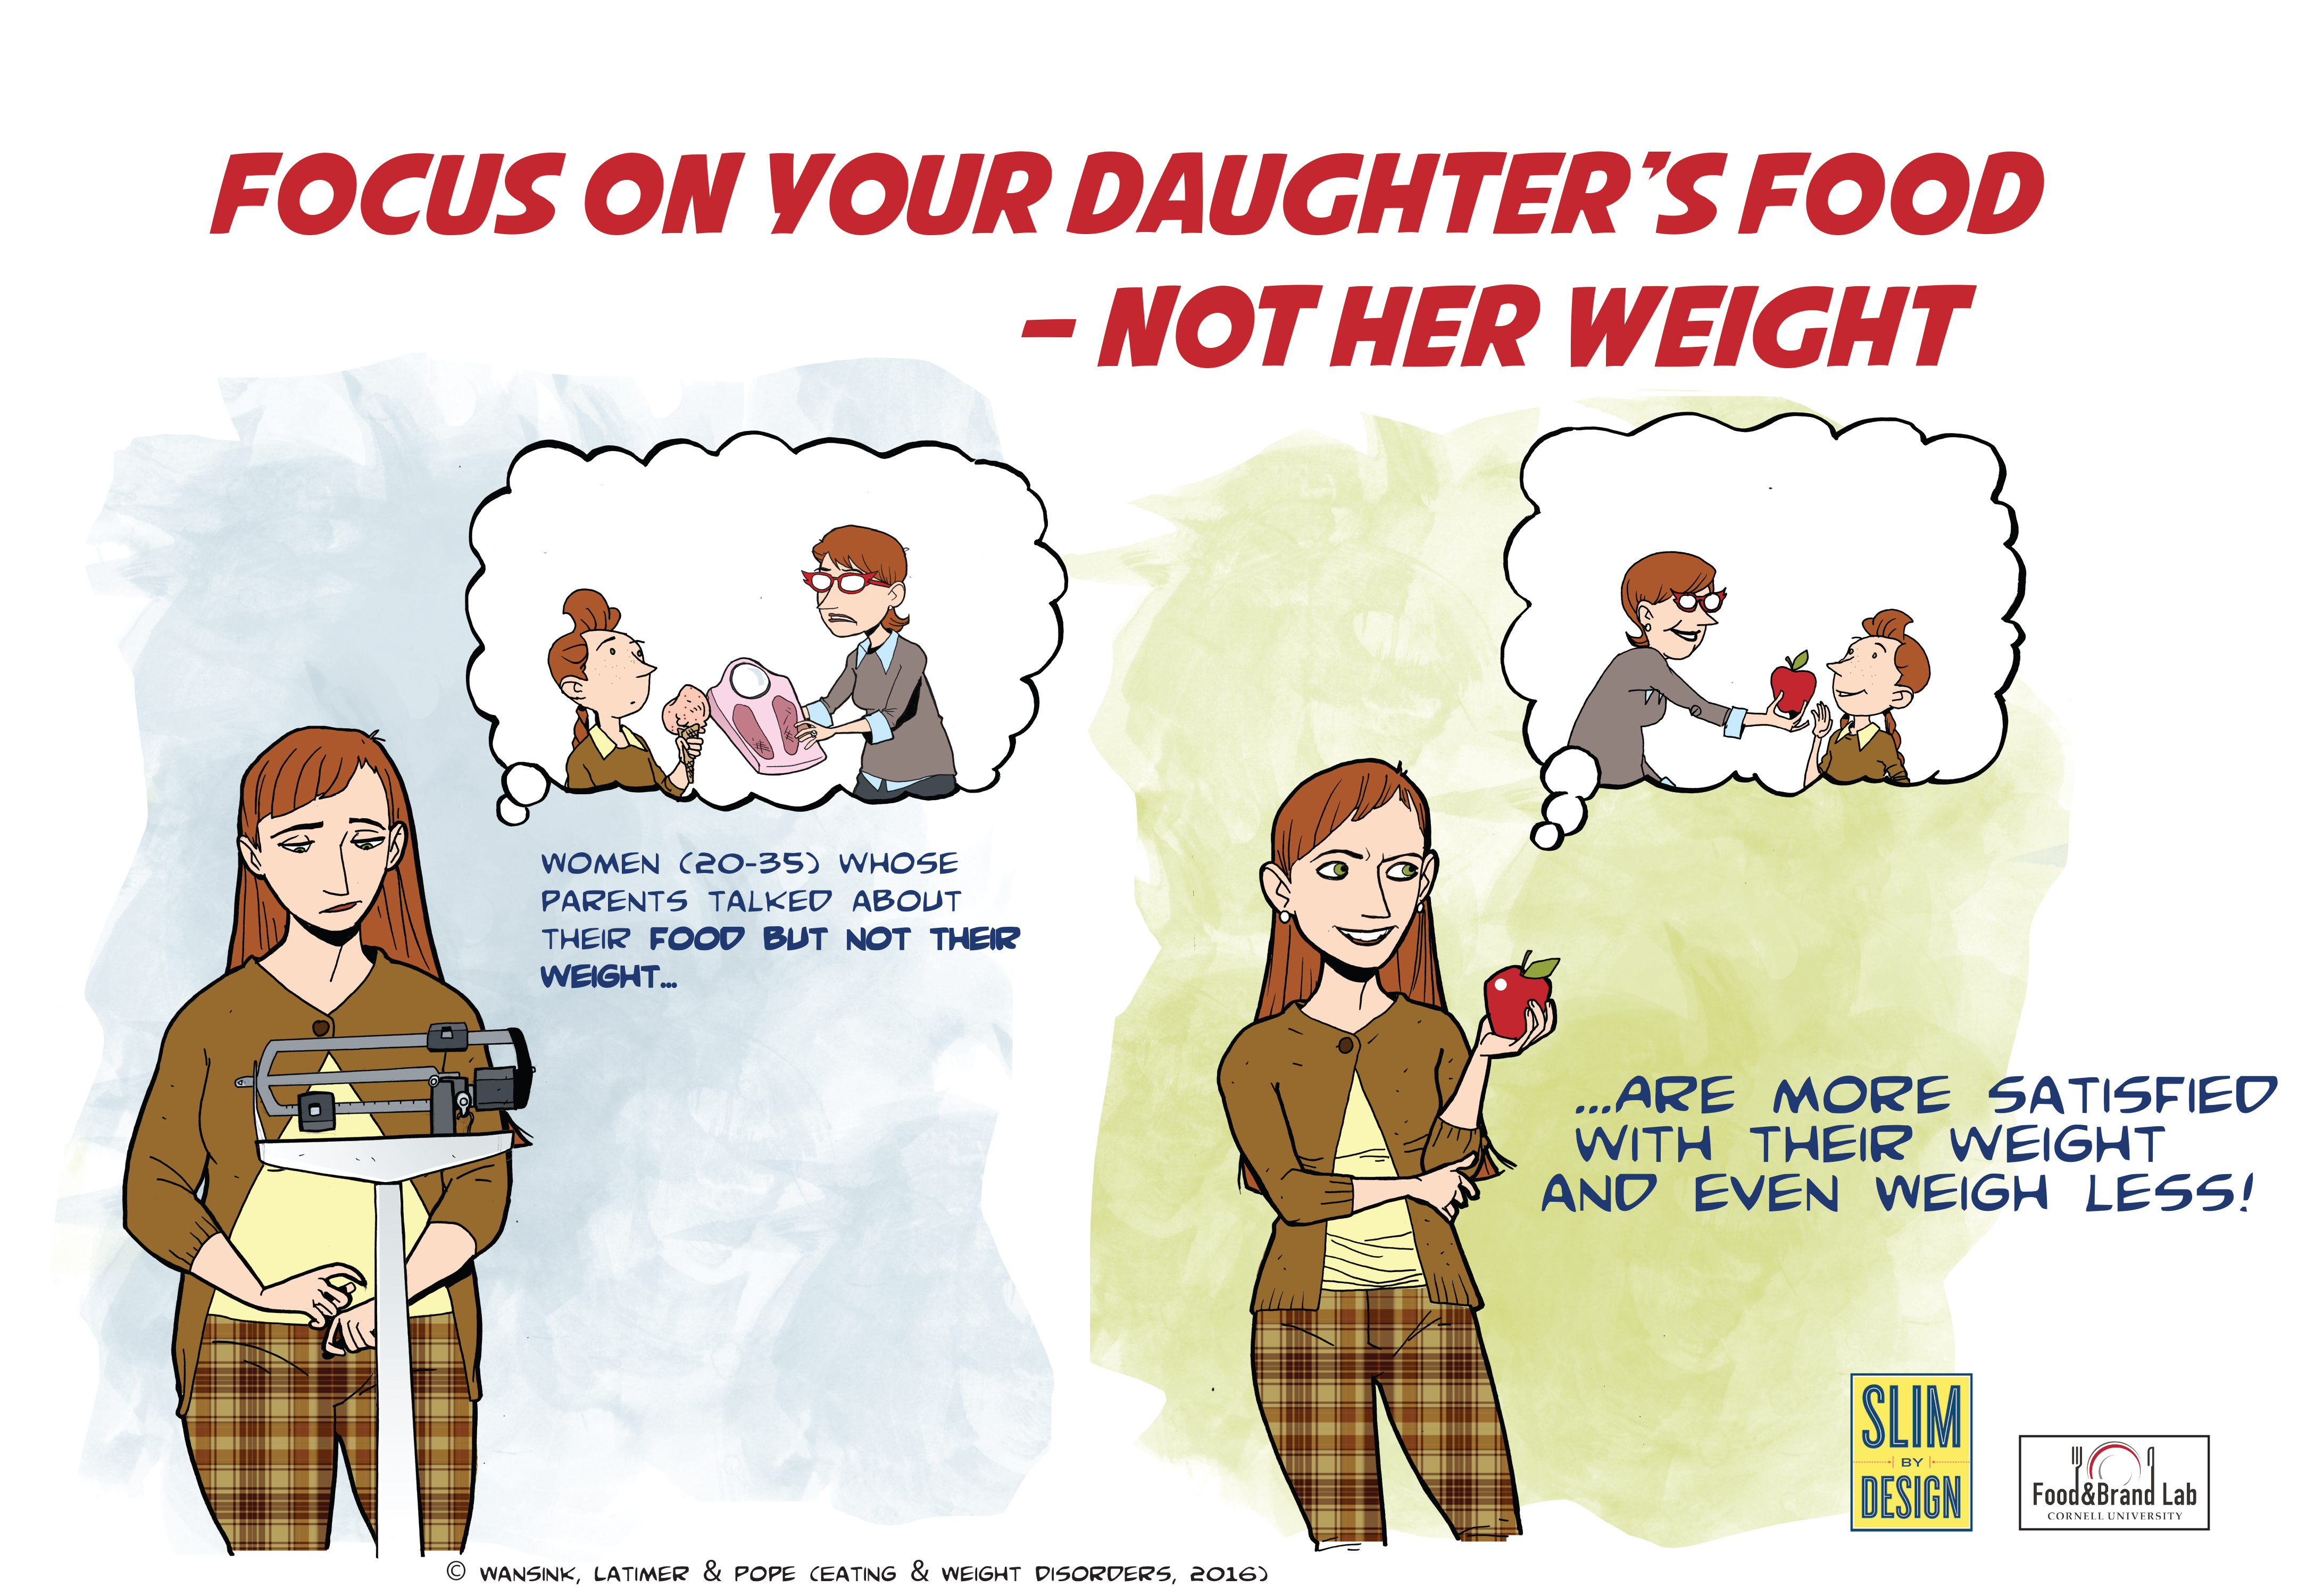 Focus on Your Daughter's Food, Not Her Weight